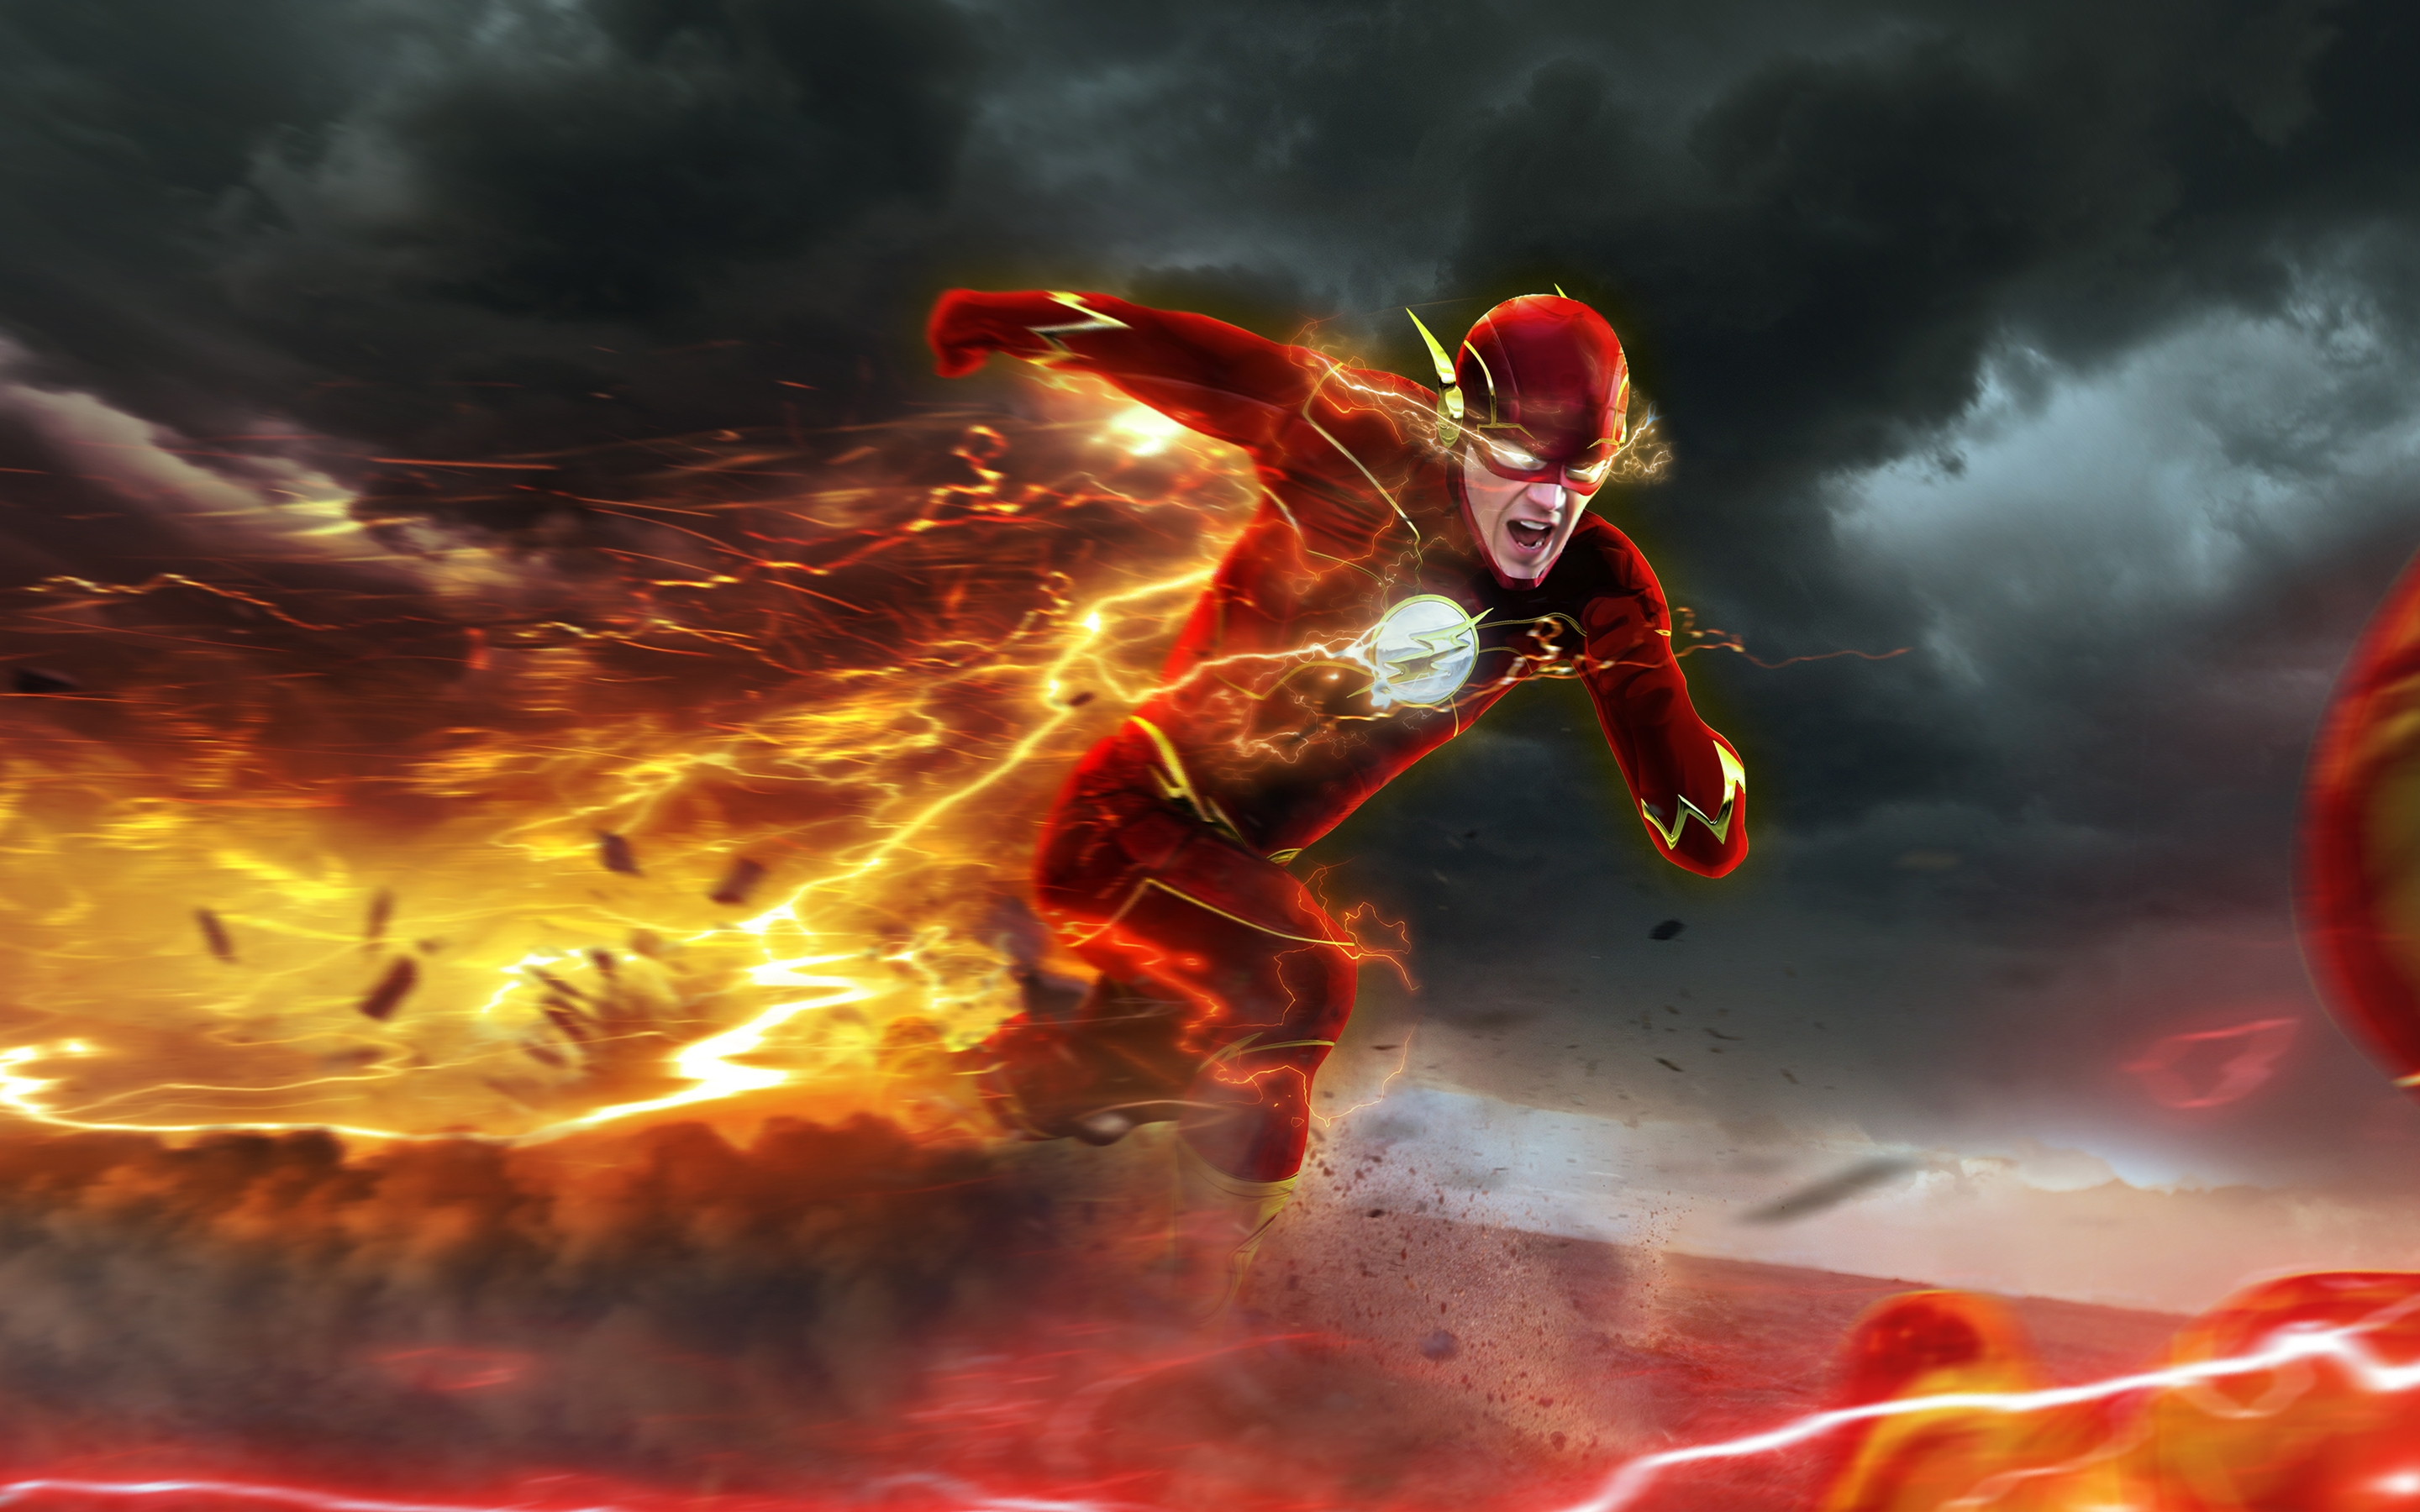 Flash 4k Wallpapers For Your Desktop Or Mobile Screen Free And